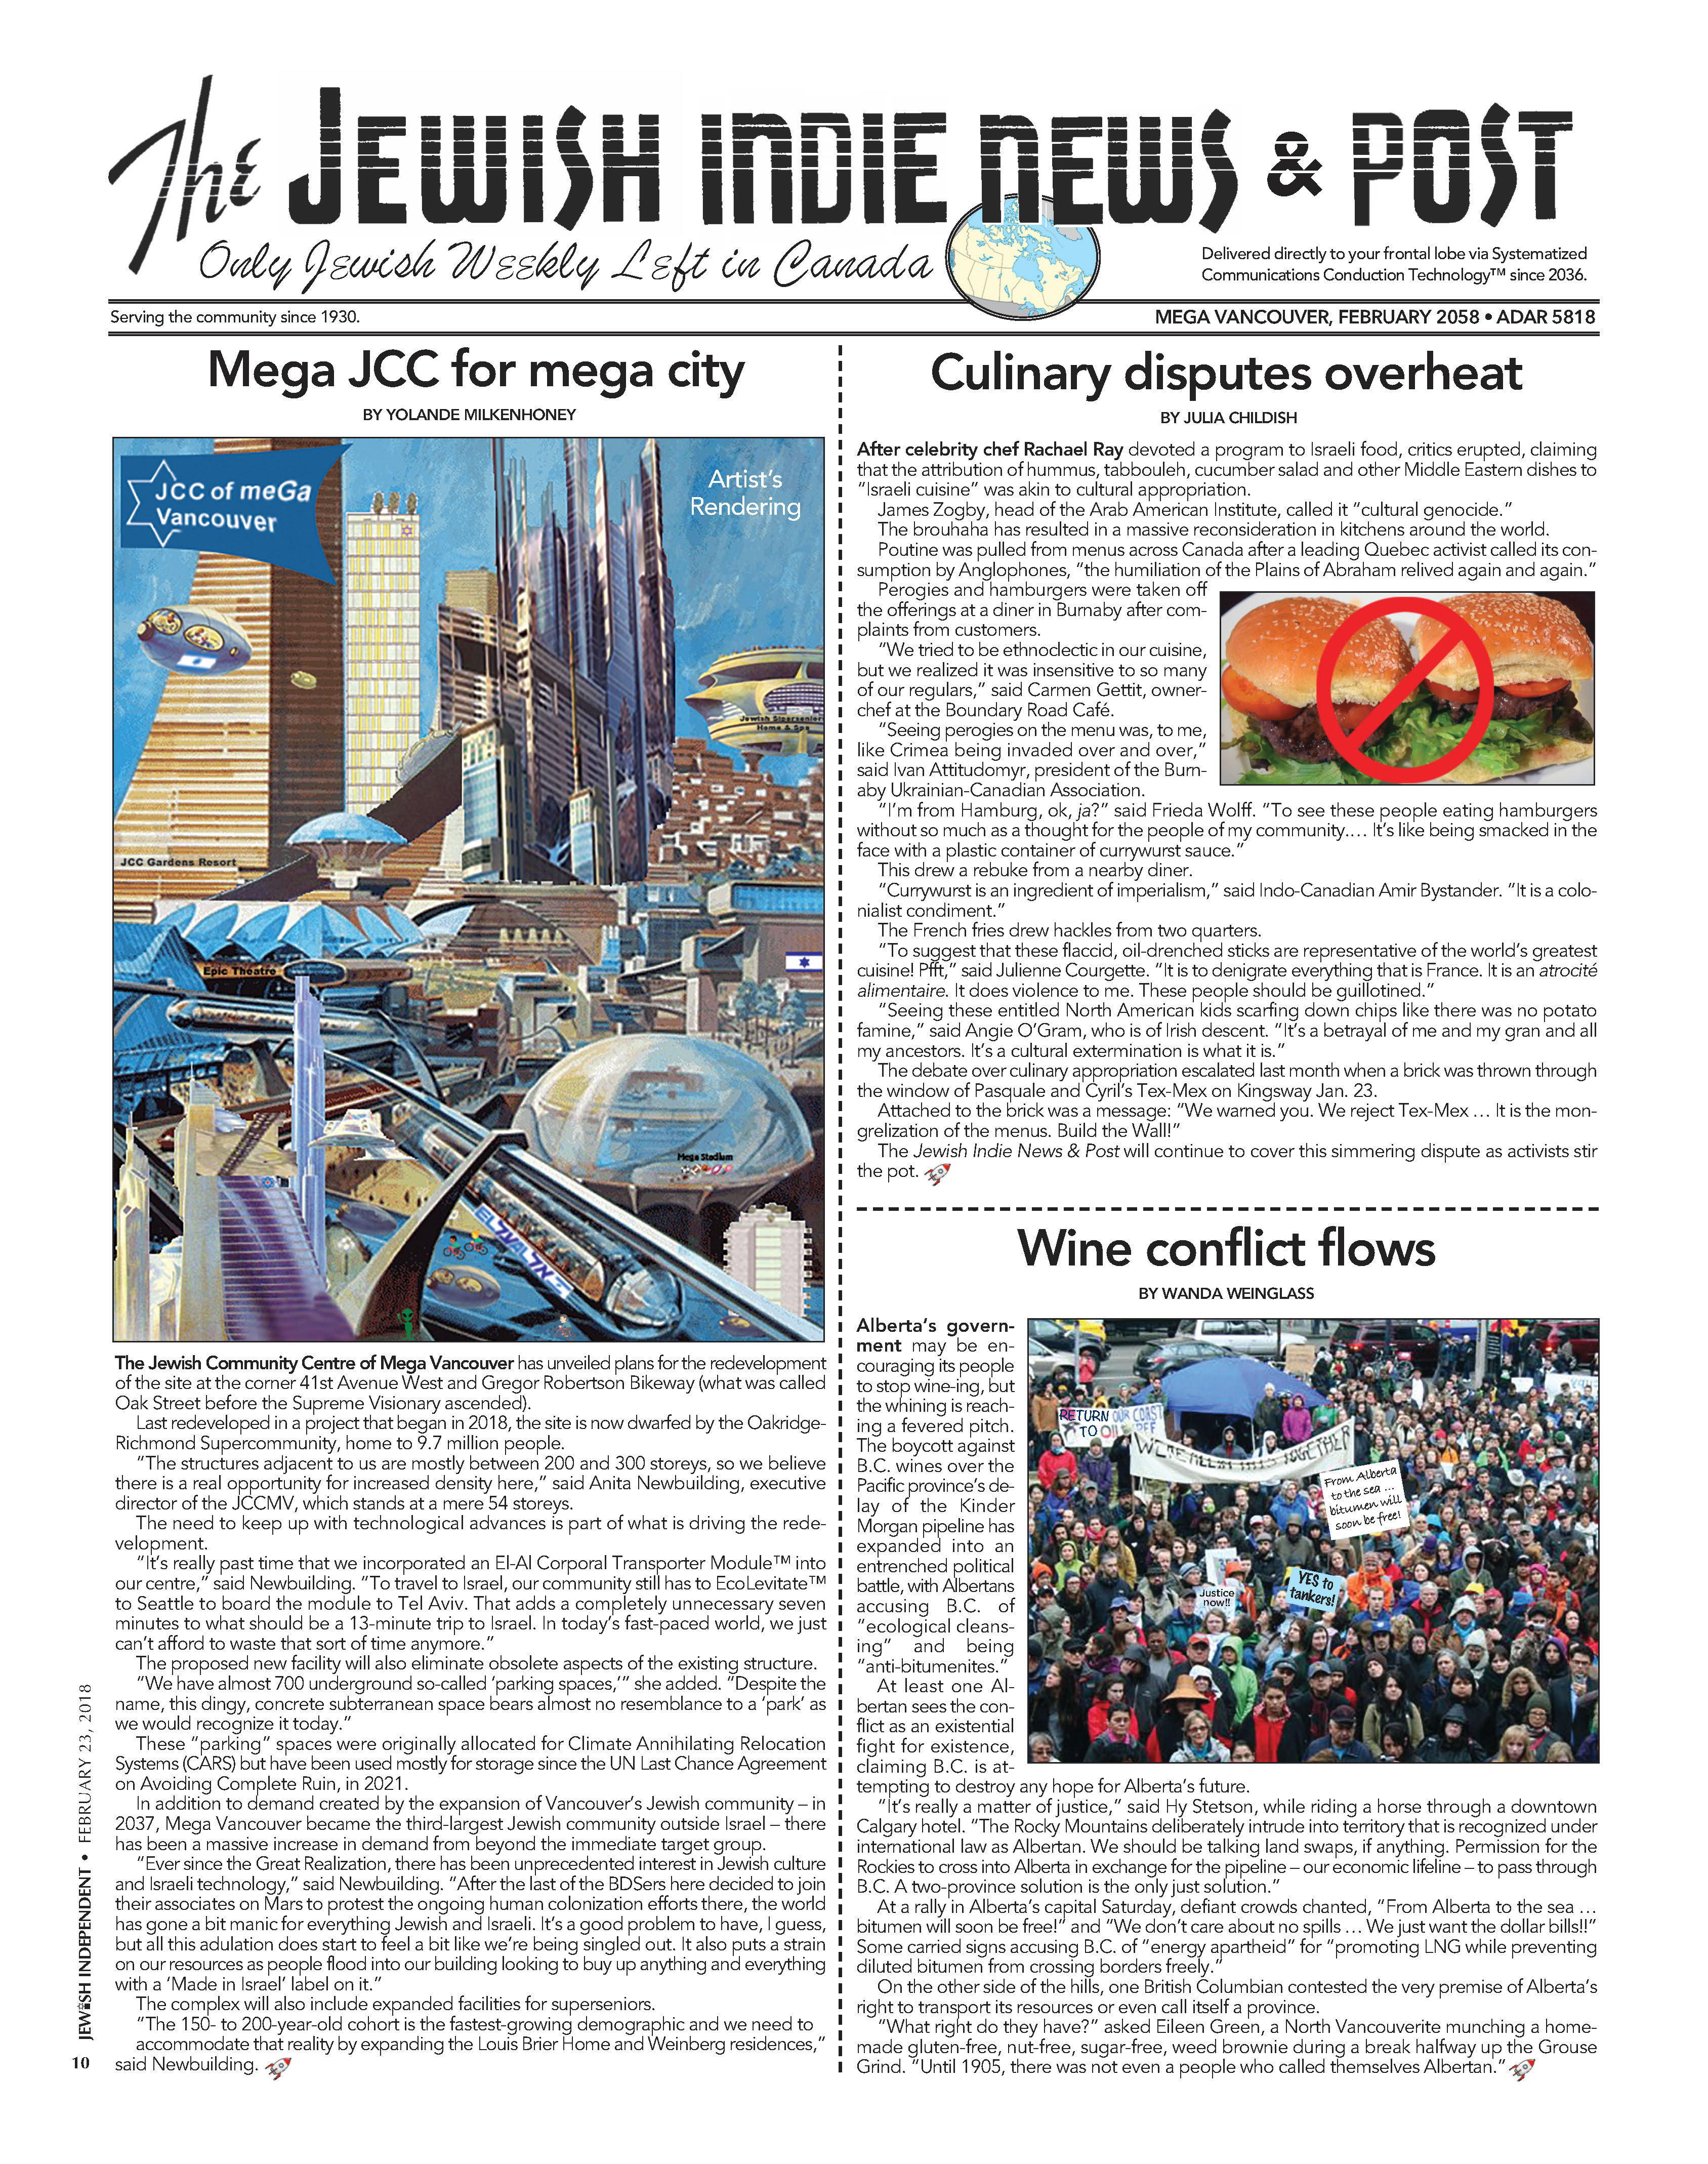 Purim spoof newspaper - Jewish Indie News & Post